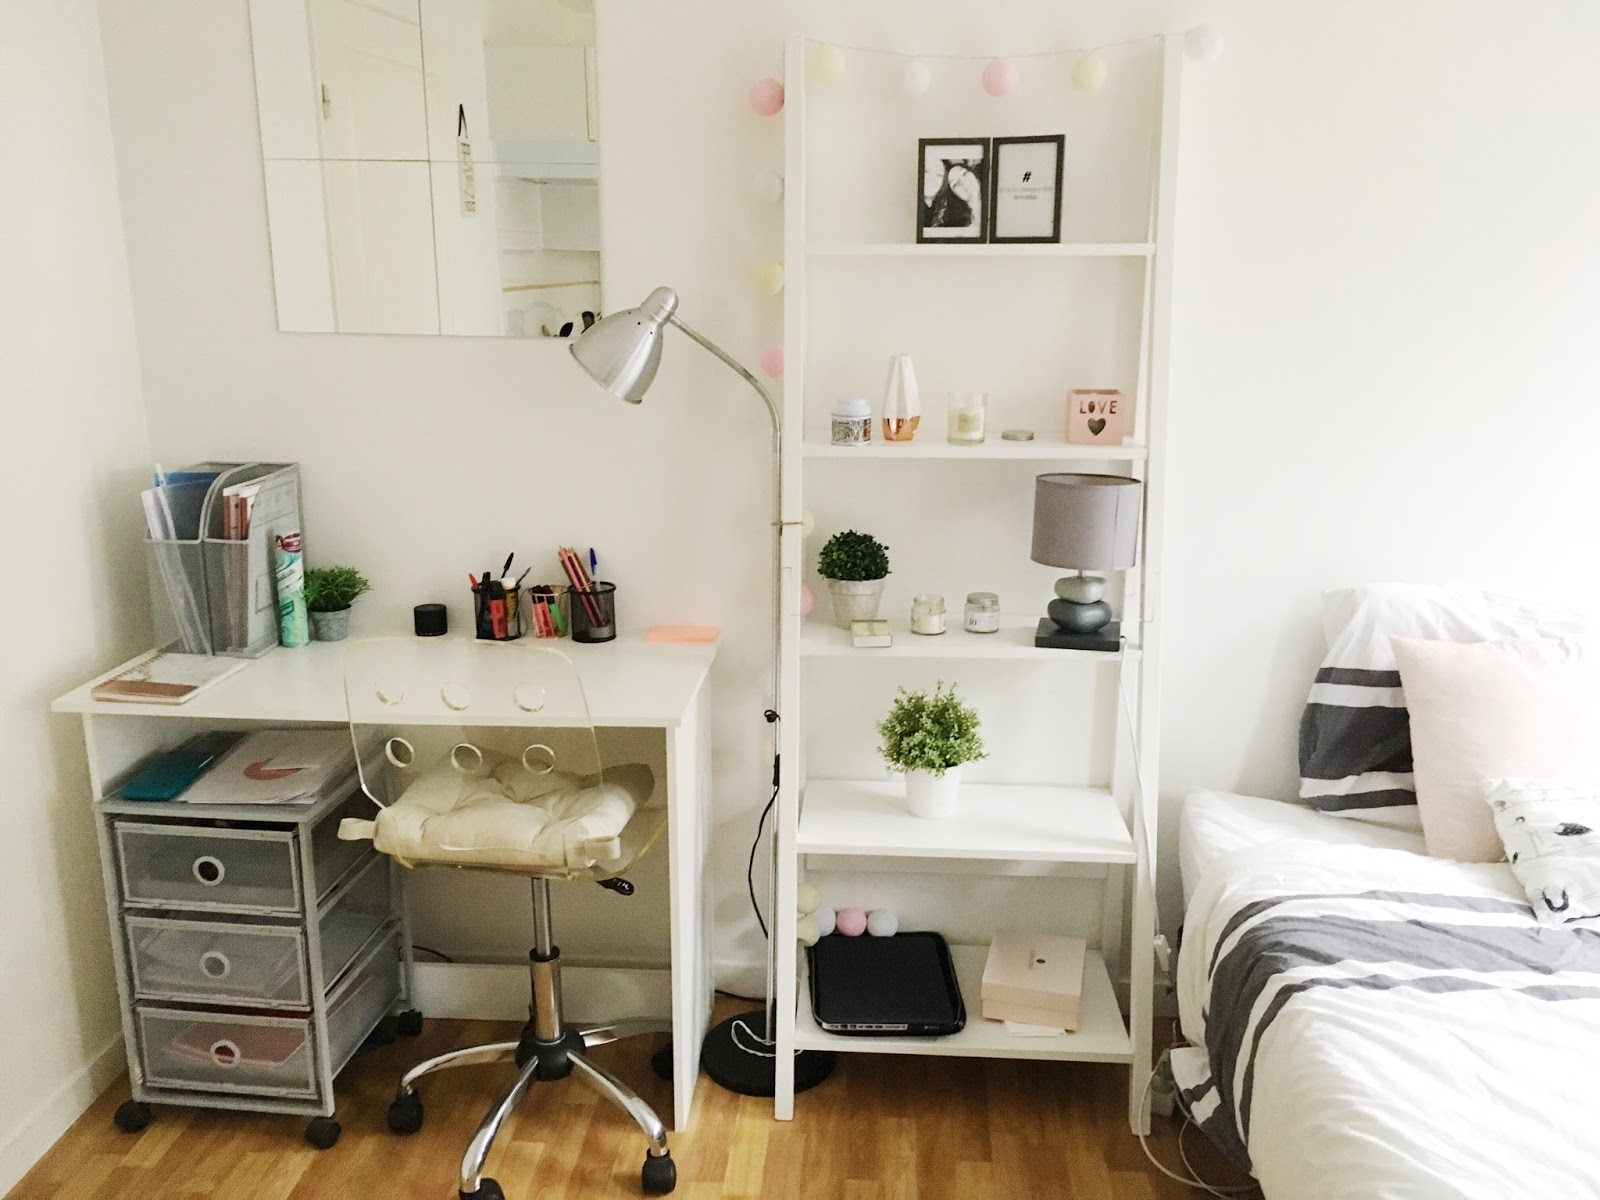 Aménager un studio : appartement tour - Lisa Dct - Le blog lifestyle ...